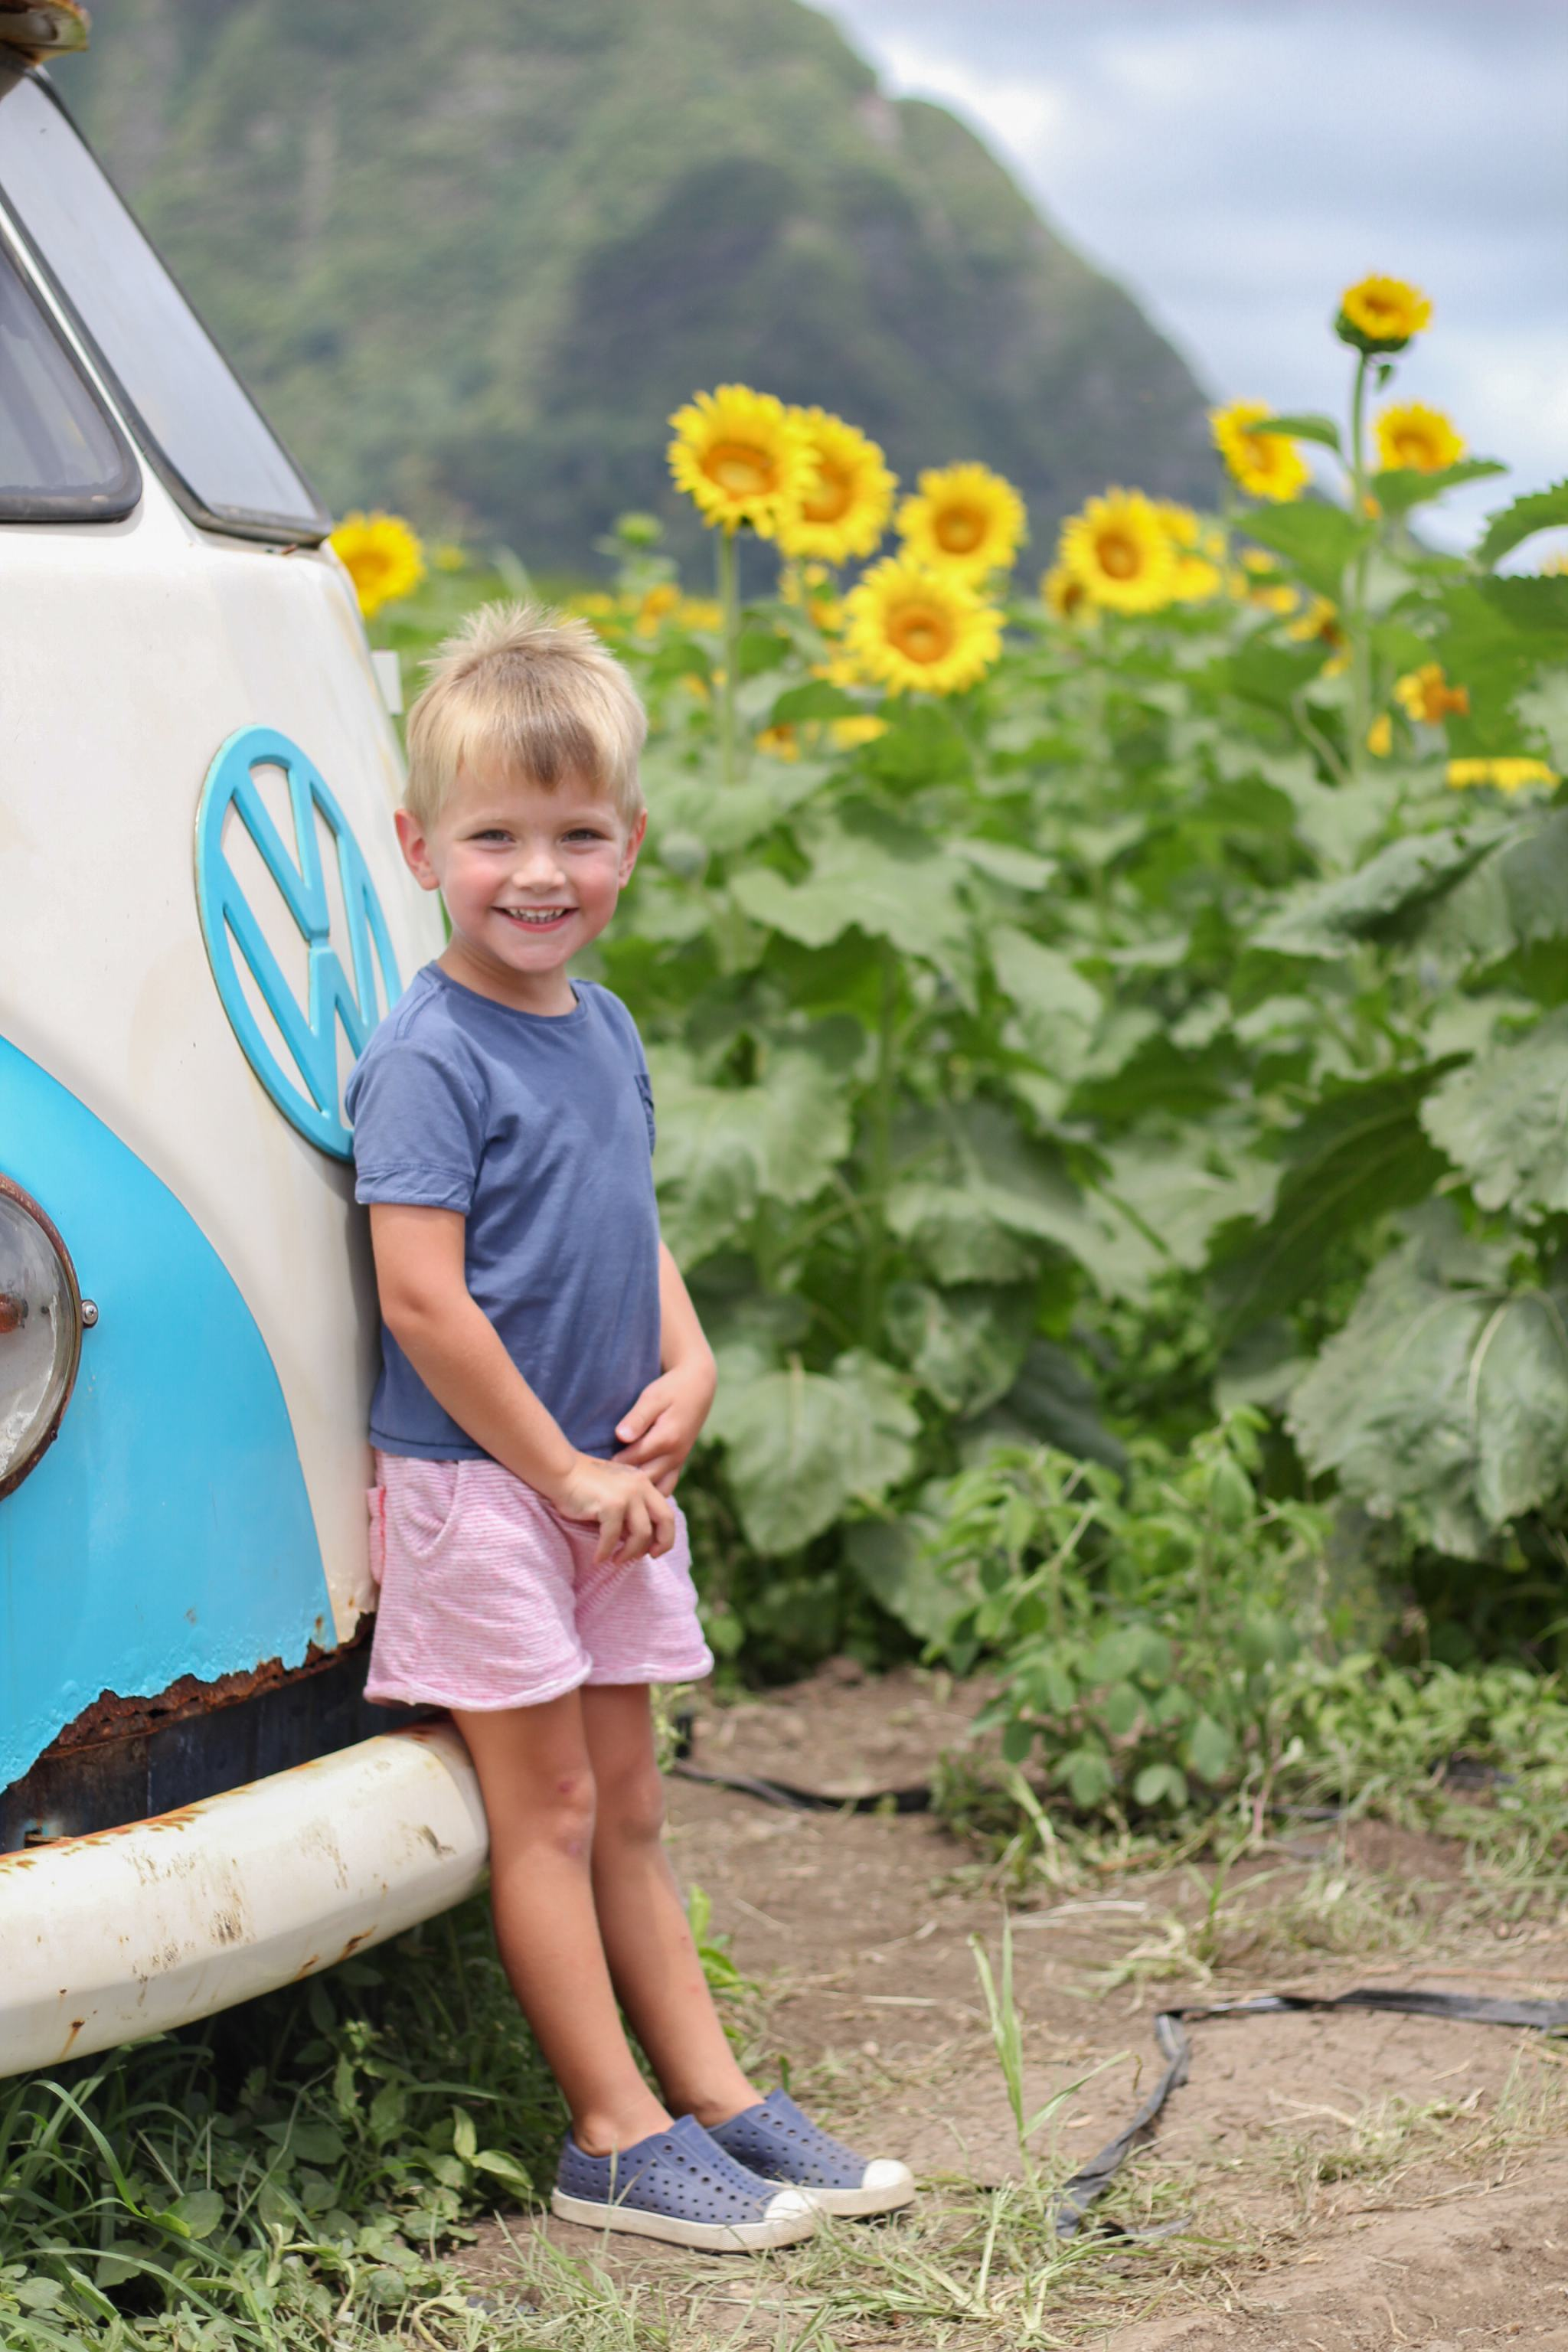 Waimanalo Country Farms - Hawaii - things to do in Hawaii - traveling in Hawaii - hawaii with kids - oahu with kids - sunflower field - sunflowers in hawaii - toddler style - toddler boy style